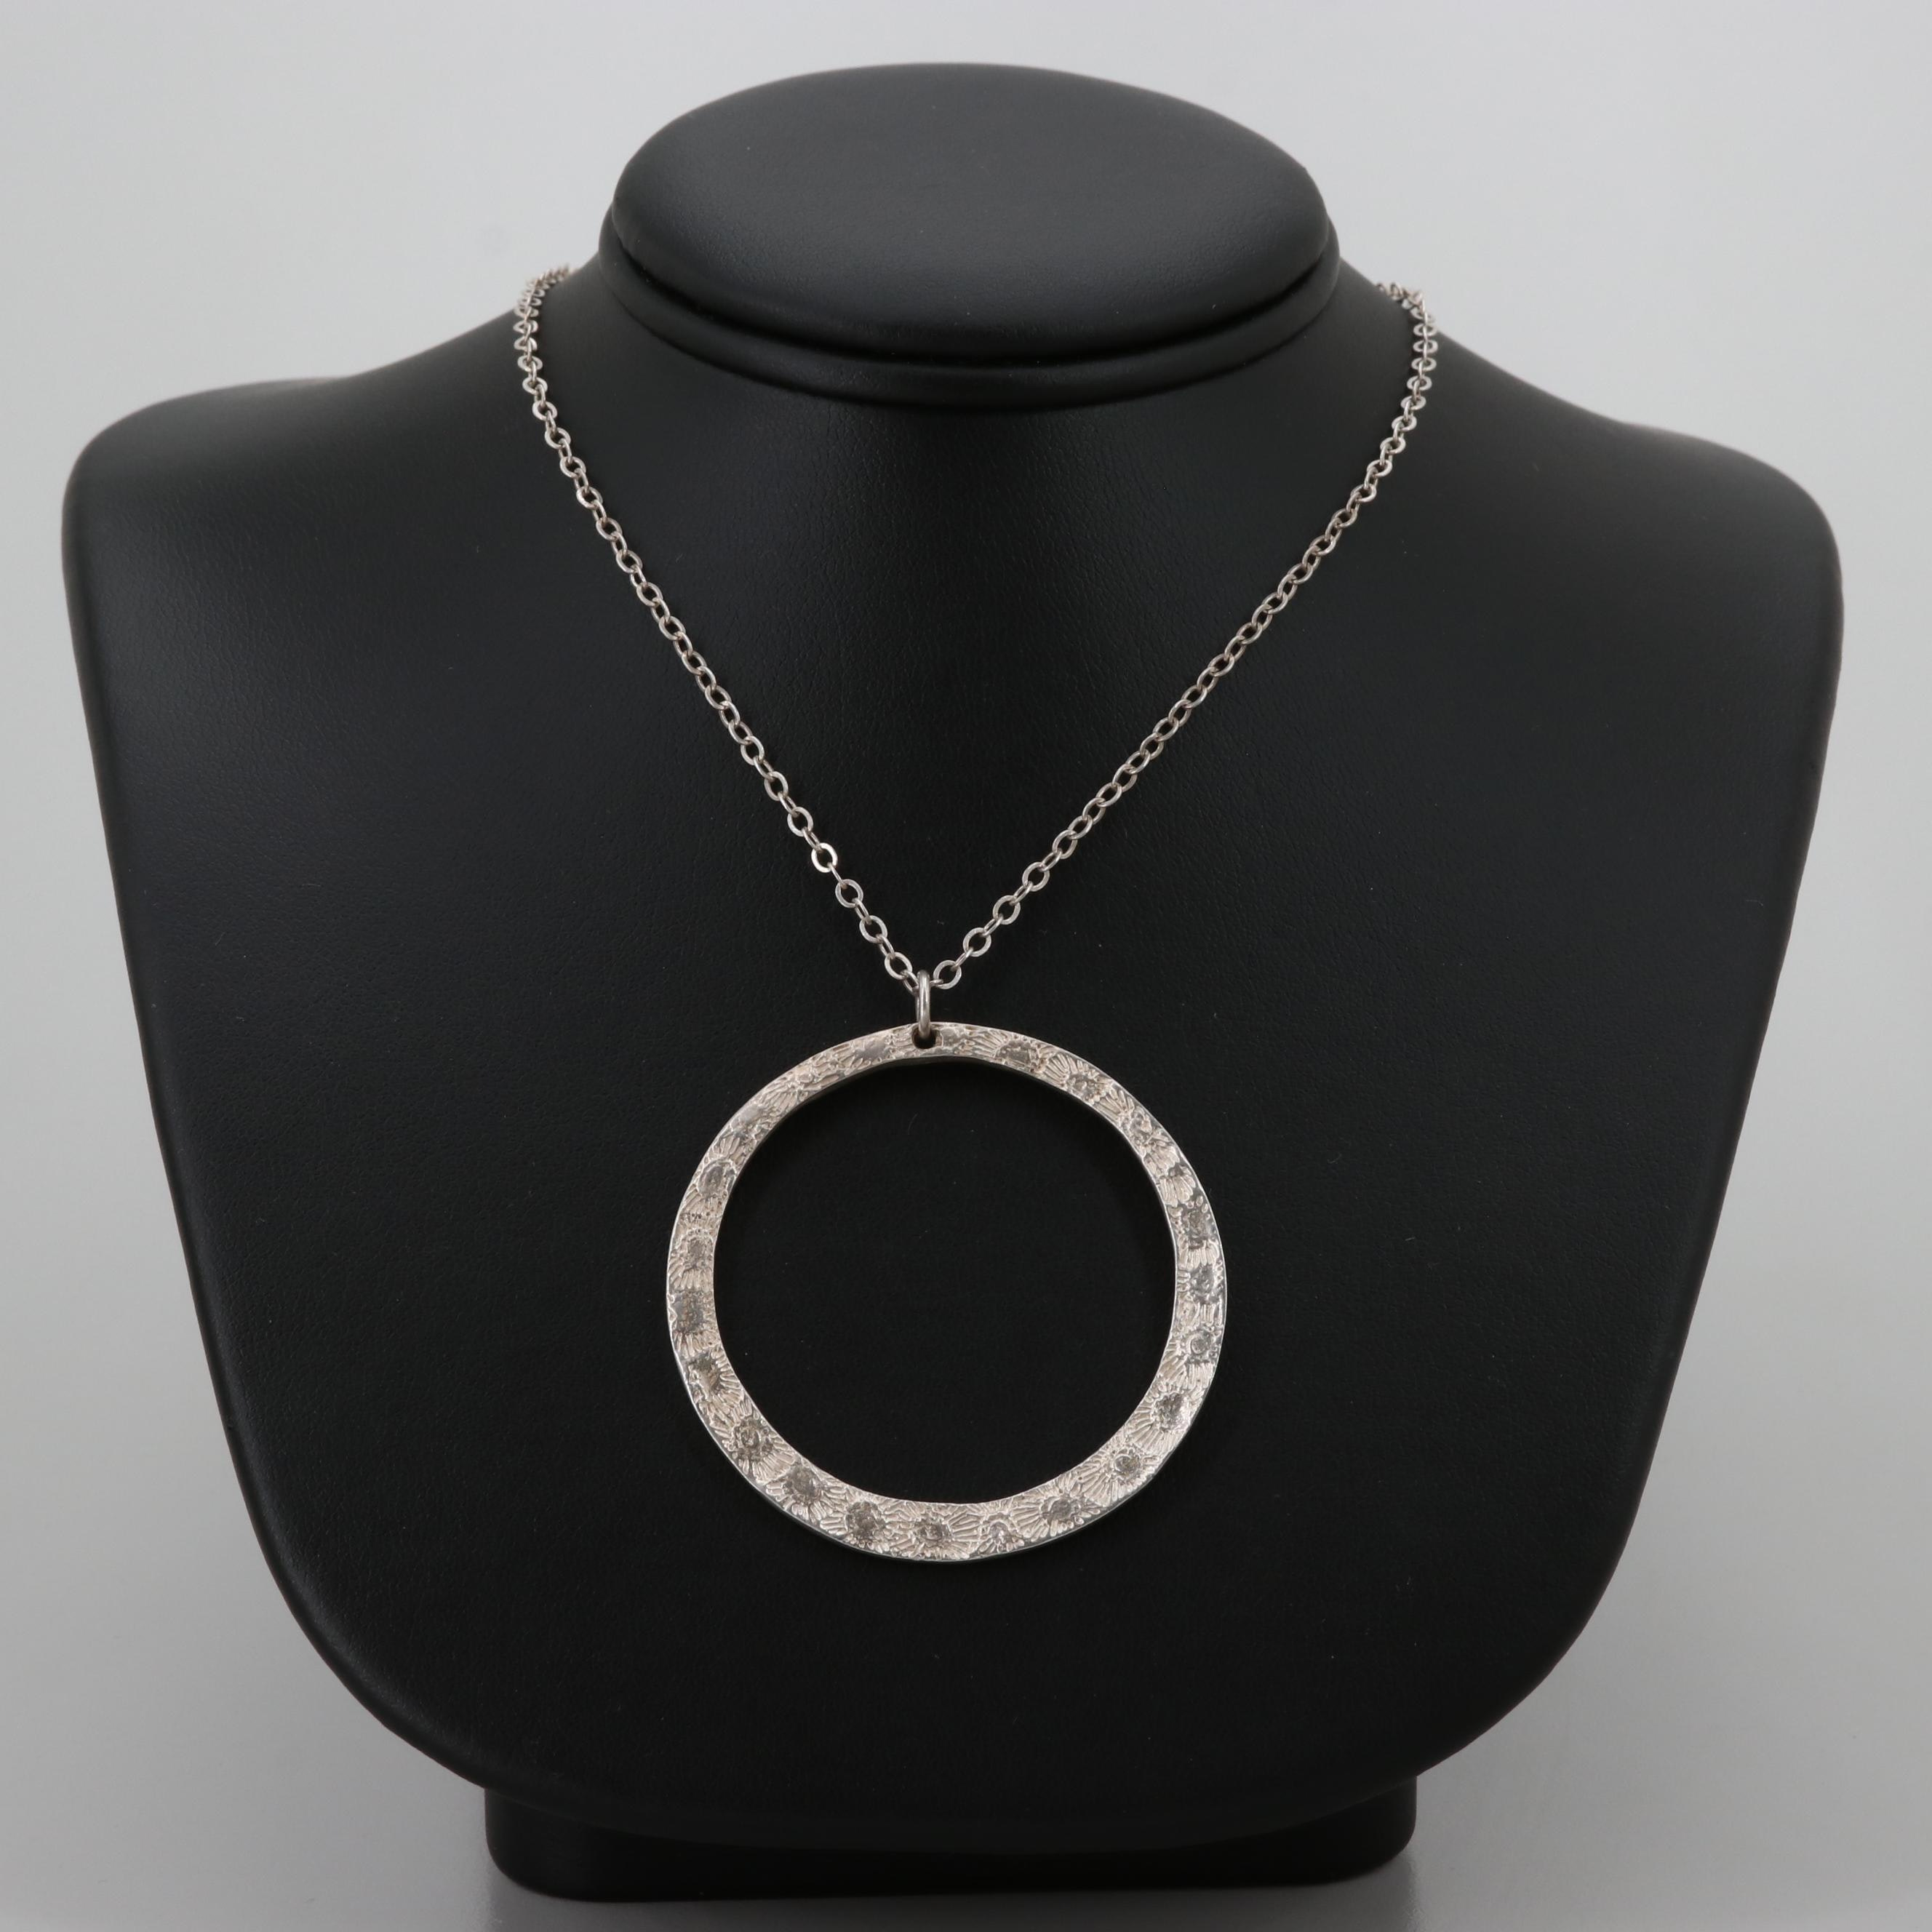 Sterling Silver Ring Pendant Necklace